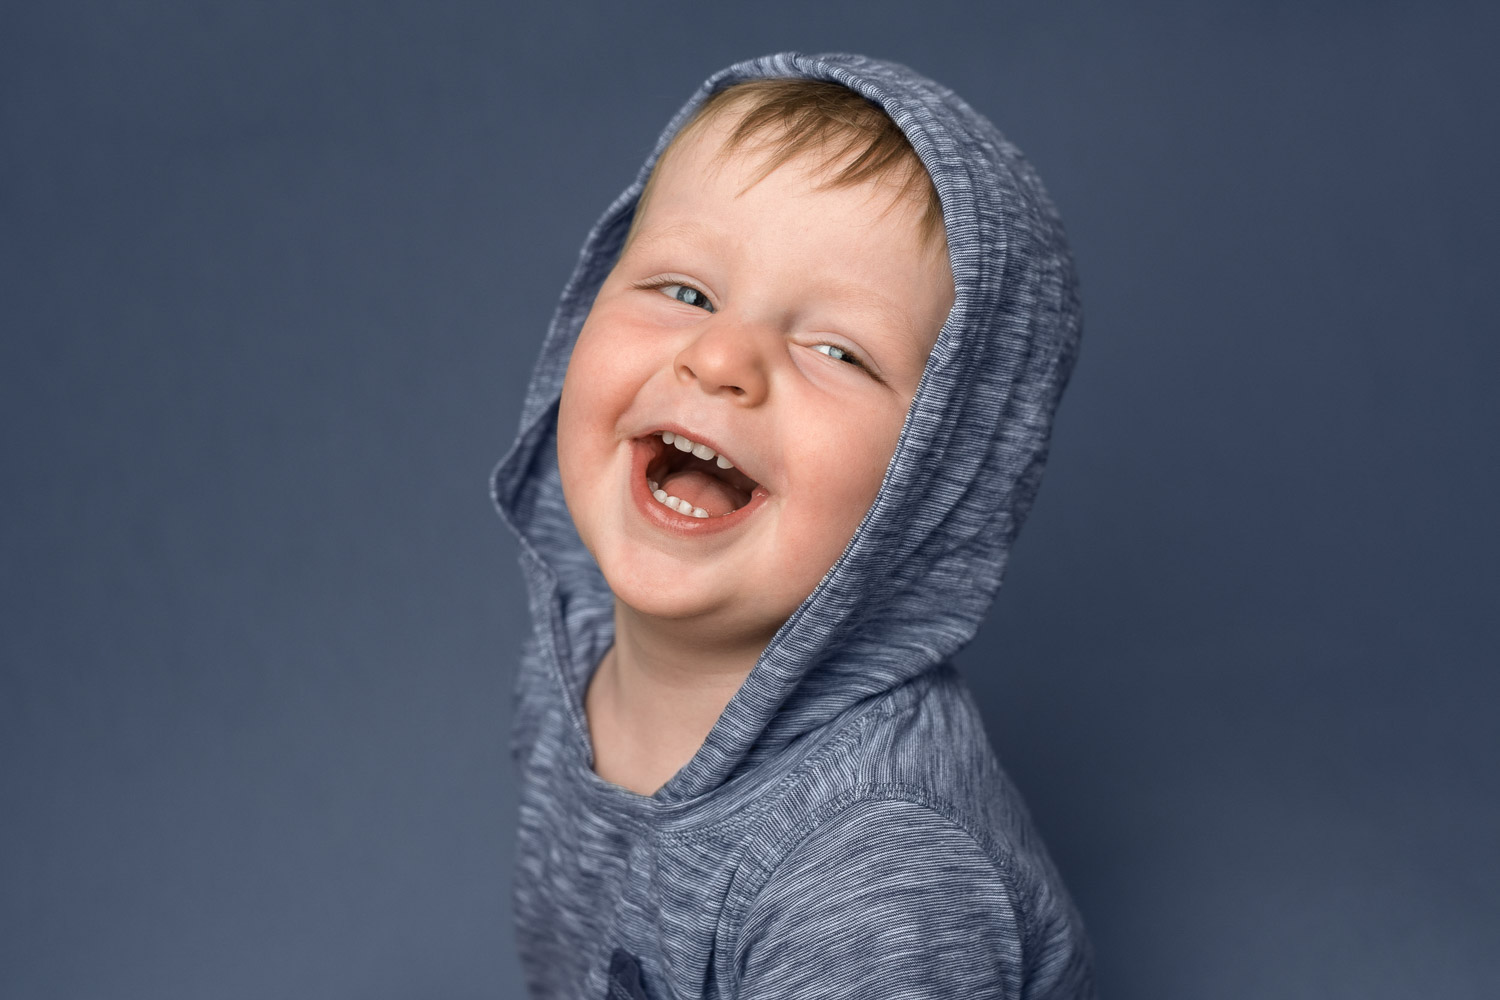 boy laughing photograph by siobhan kelly photography